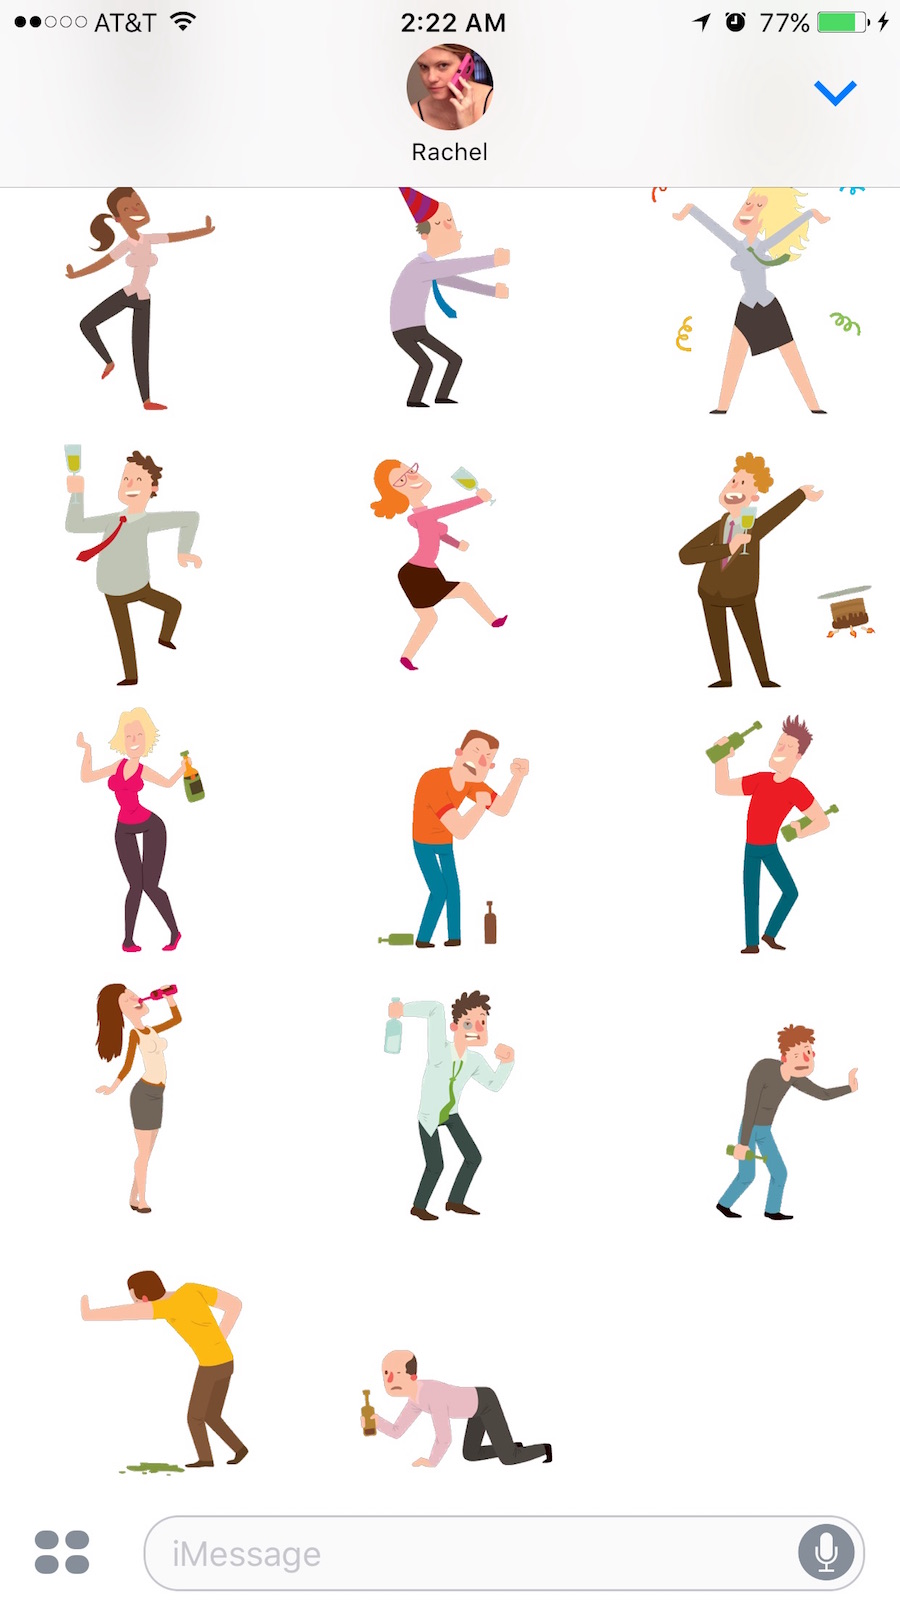 drunk stickers for iOS messages